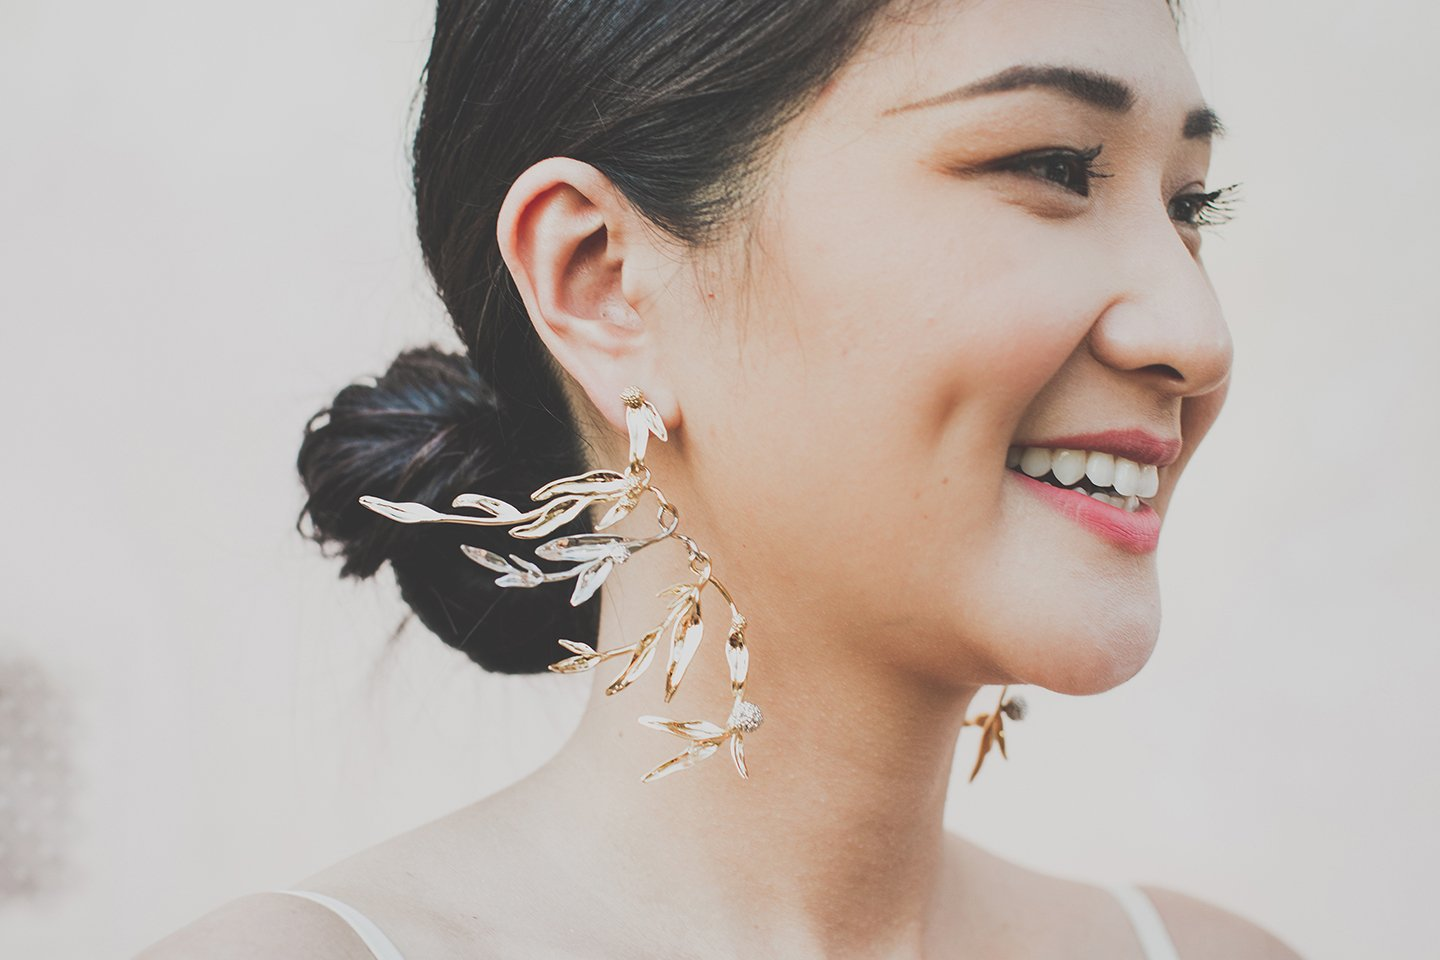 pronovias-wedding-earings-chinese-bride-tuscany